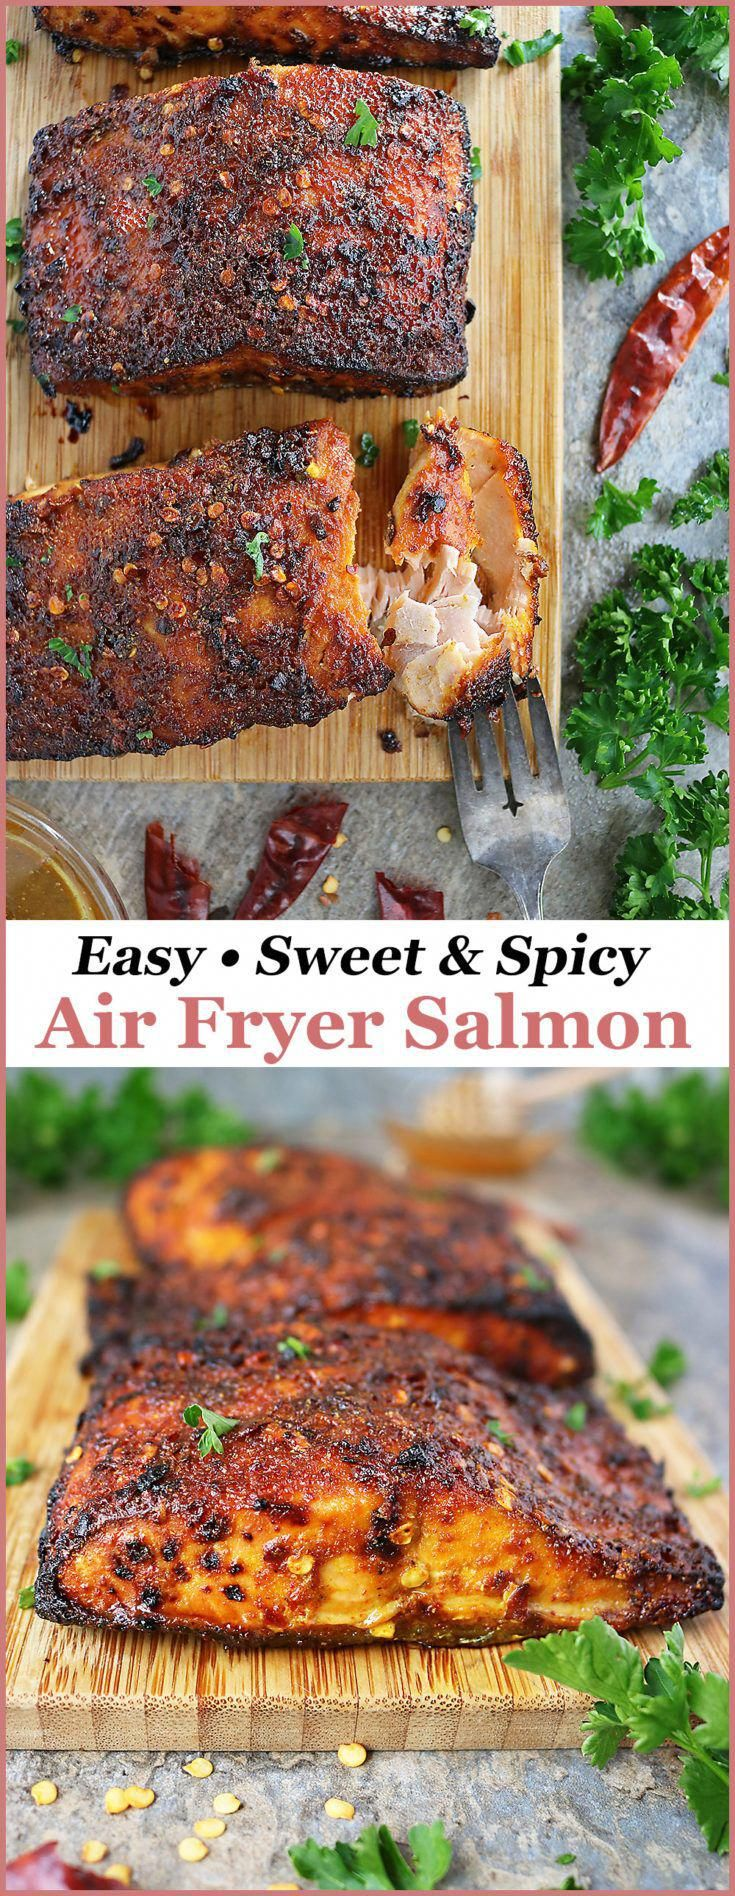 Photo of keto air fryer recipes #AirFryersRecipes